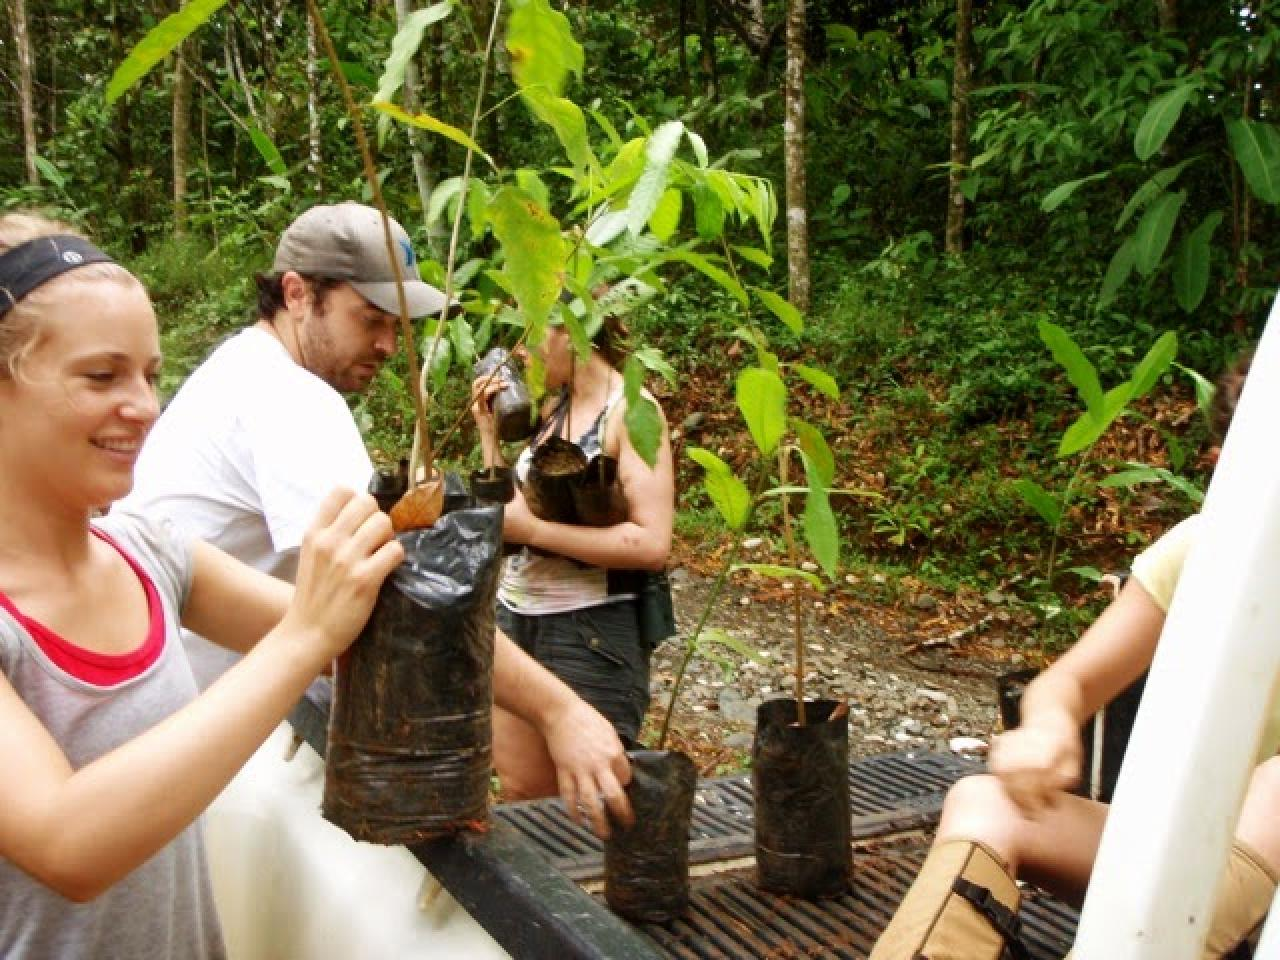 Volunteer in Reforestation and Recycling